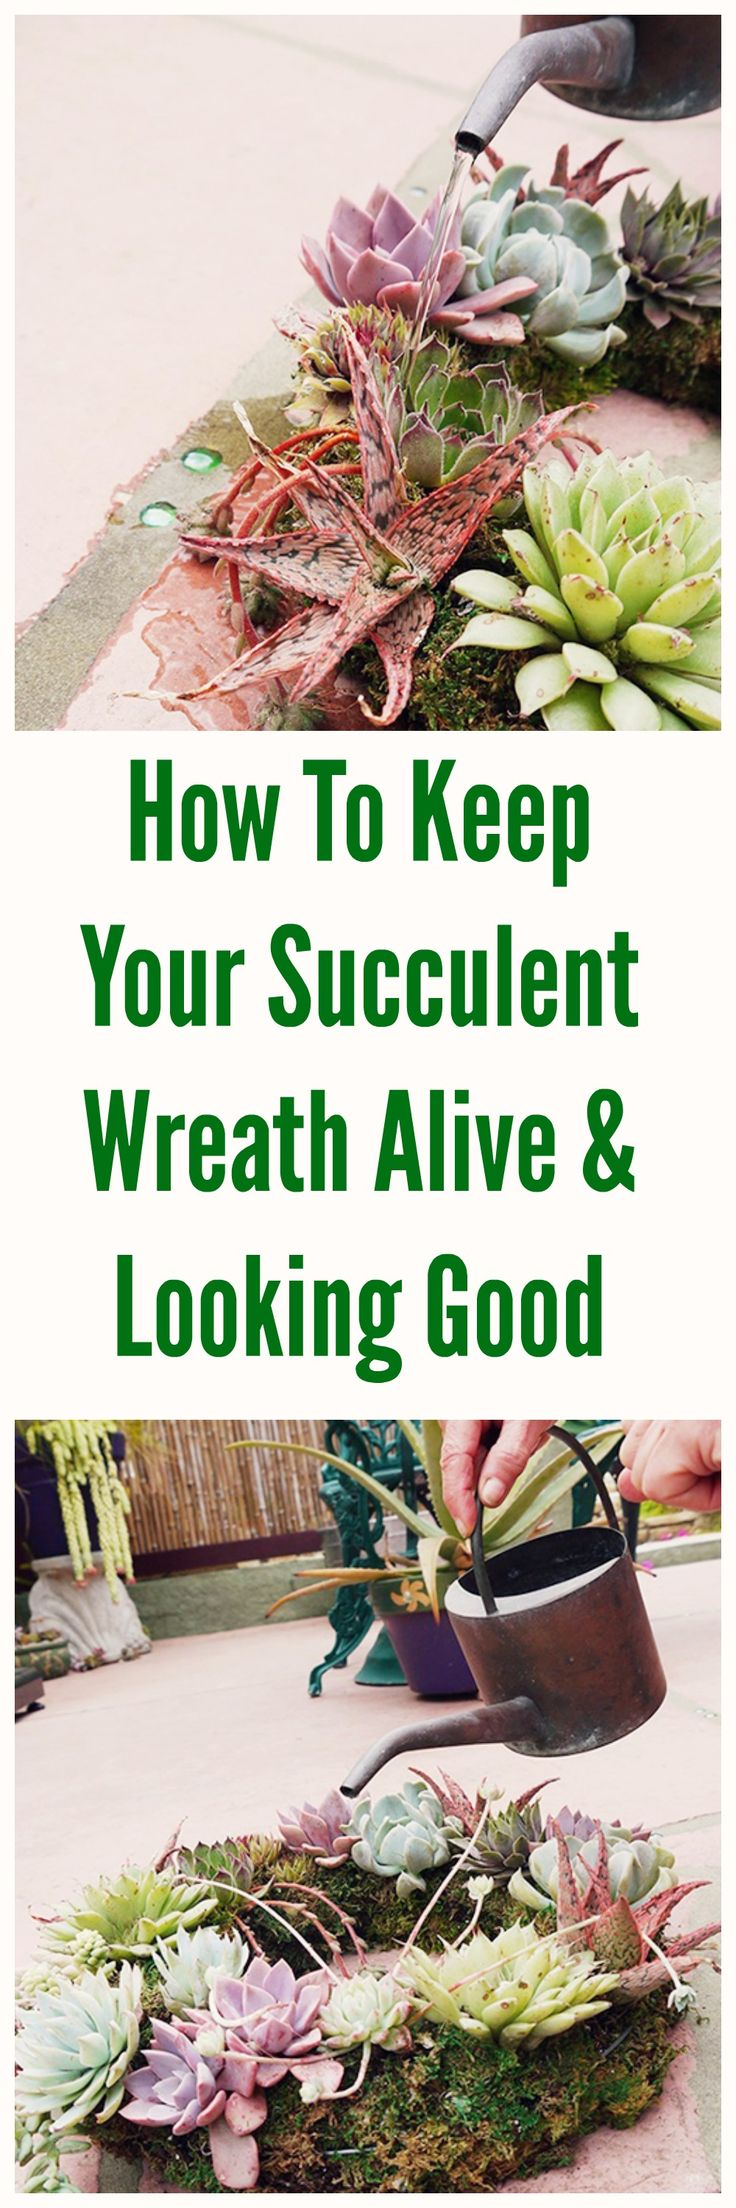 Here's what you need to know to keep your beautiful living succulent wreath alive & looking great.